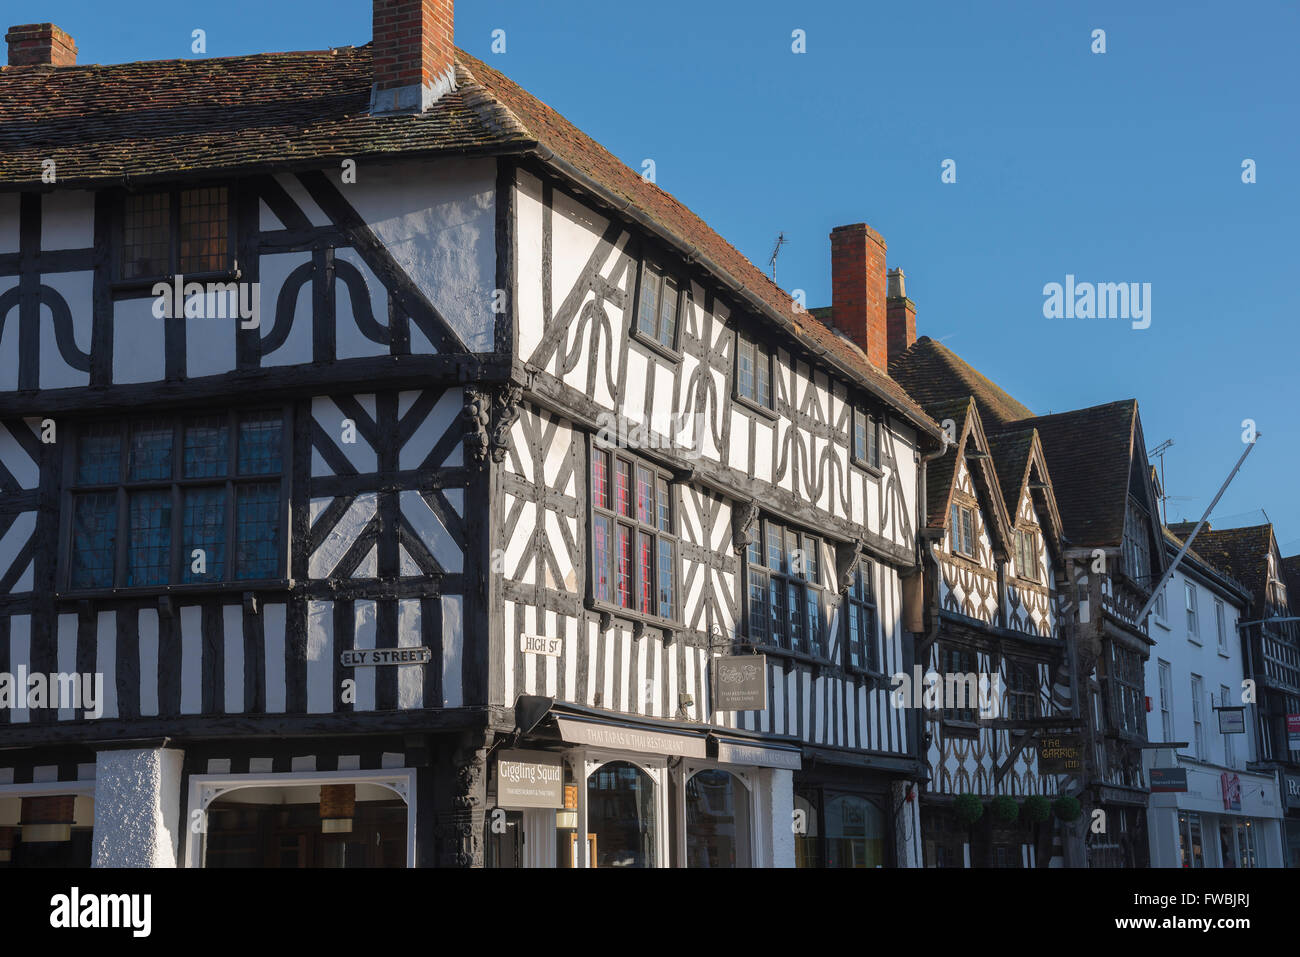 A typical medieval timber-framed building in the High Street, Stratford Upon Avon, England. - Stock Image